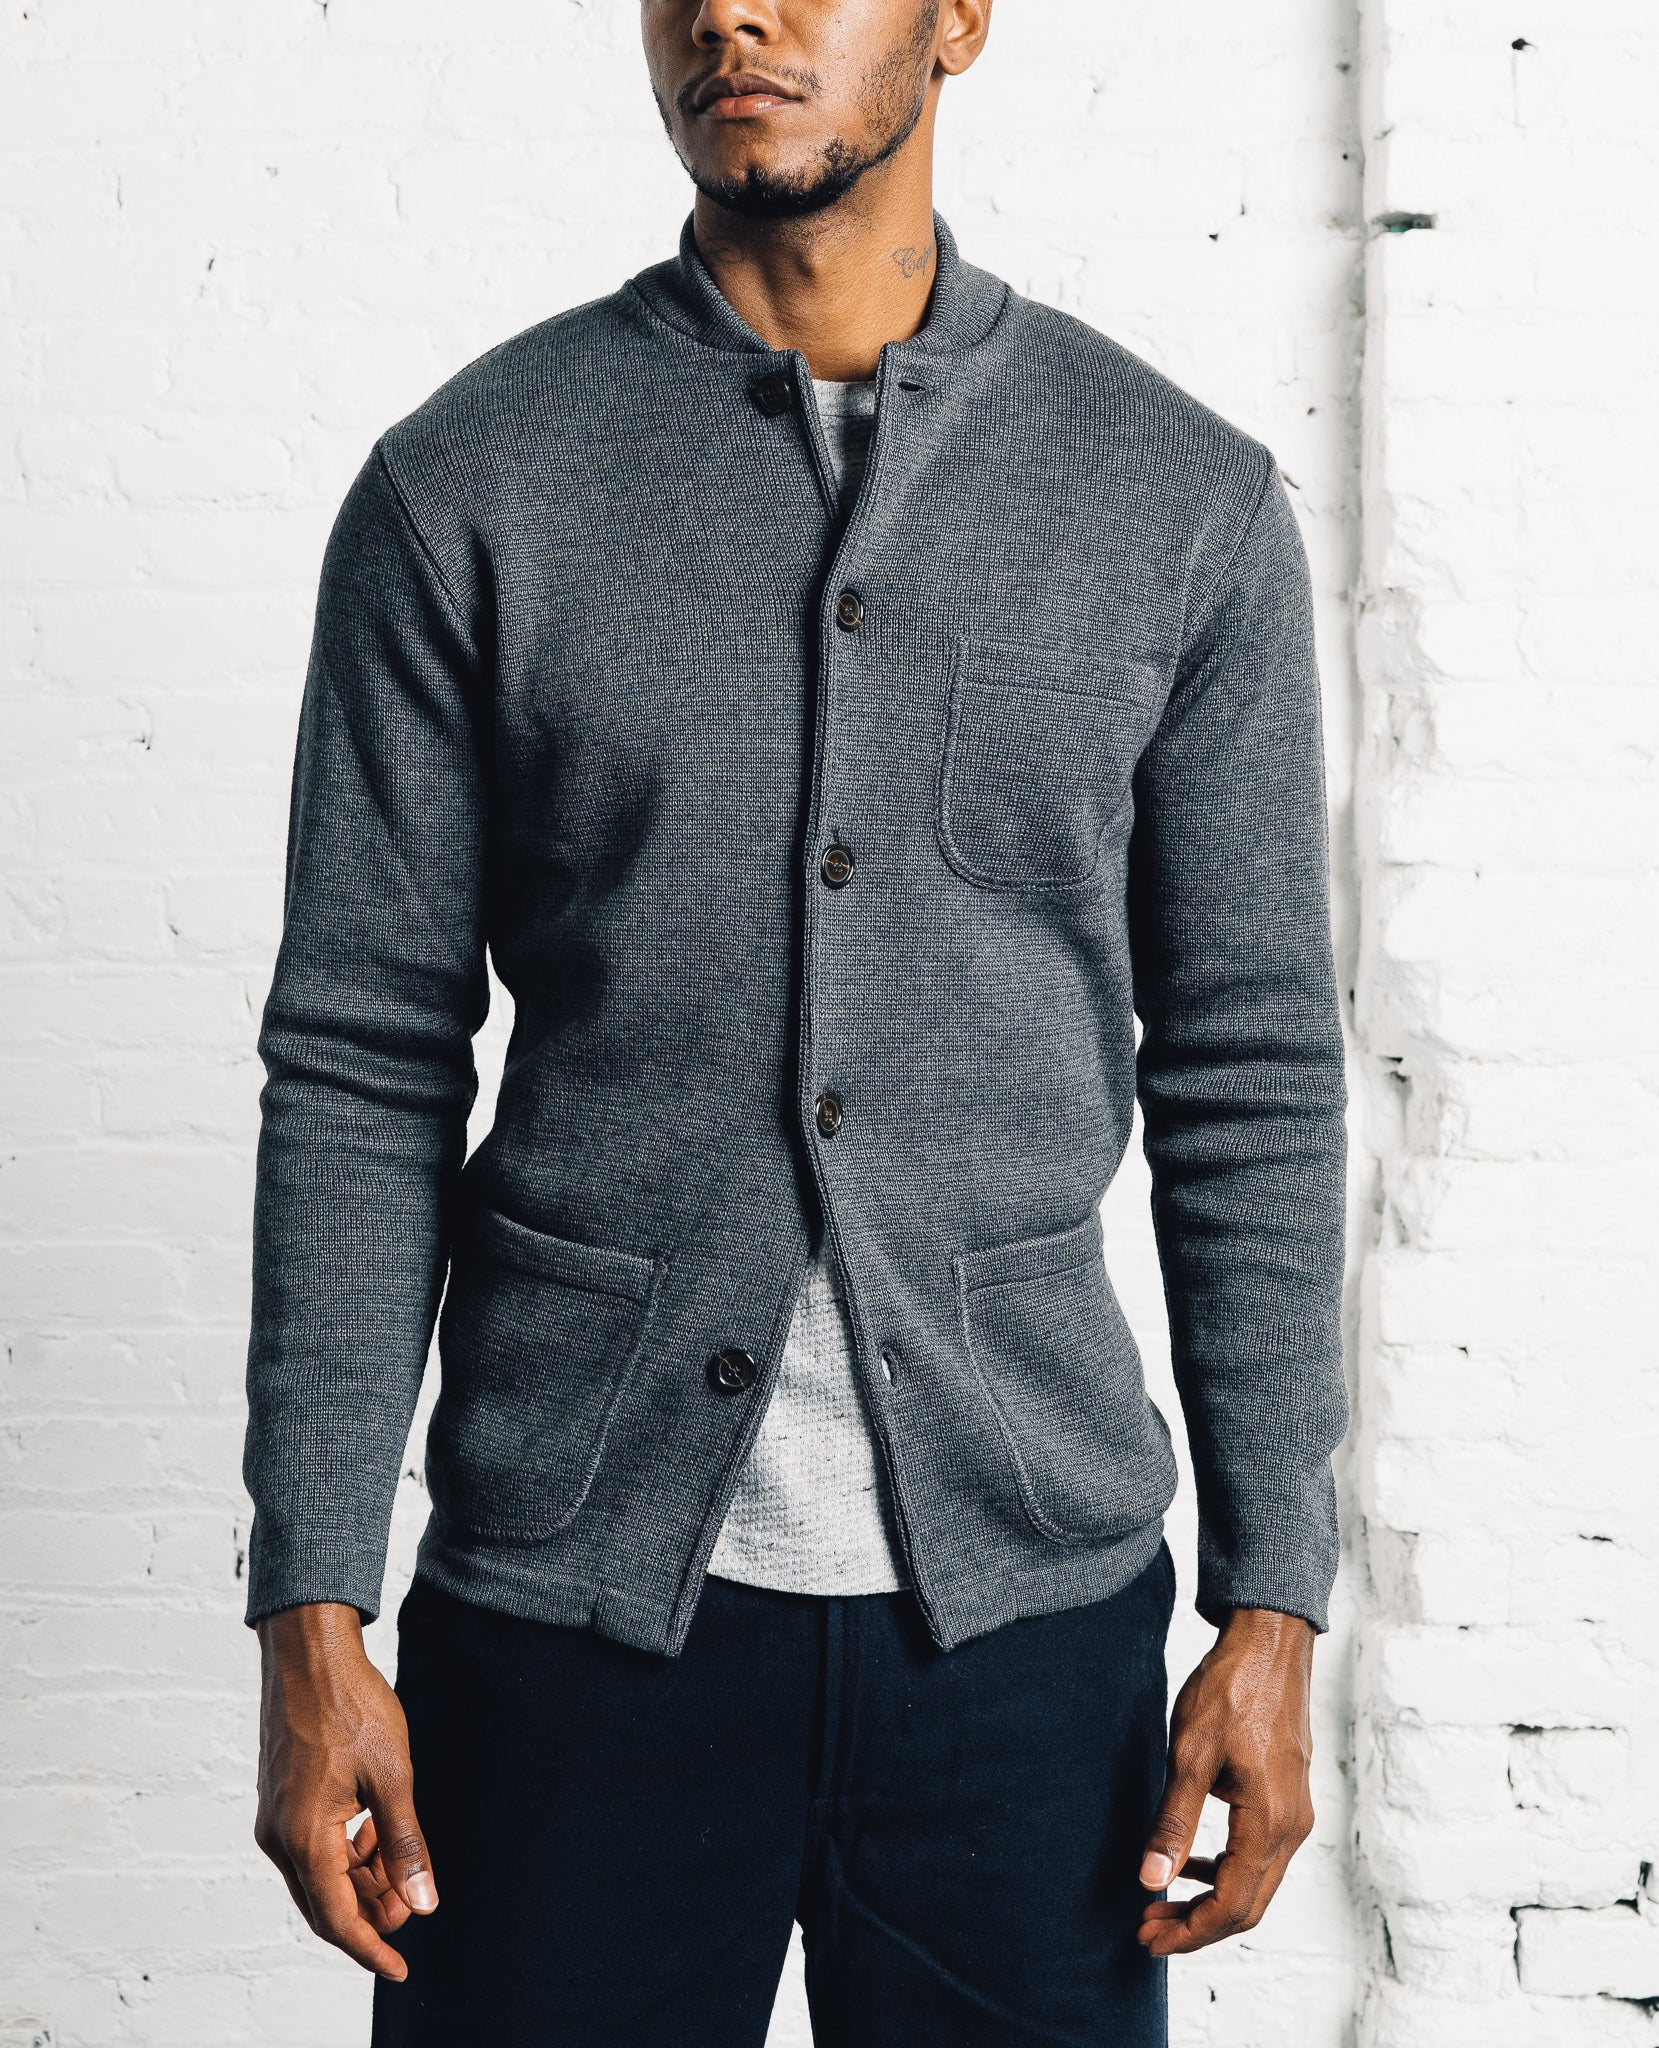 Universal Works Knit Work Jacket, Charcoal